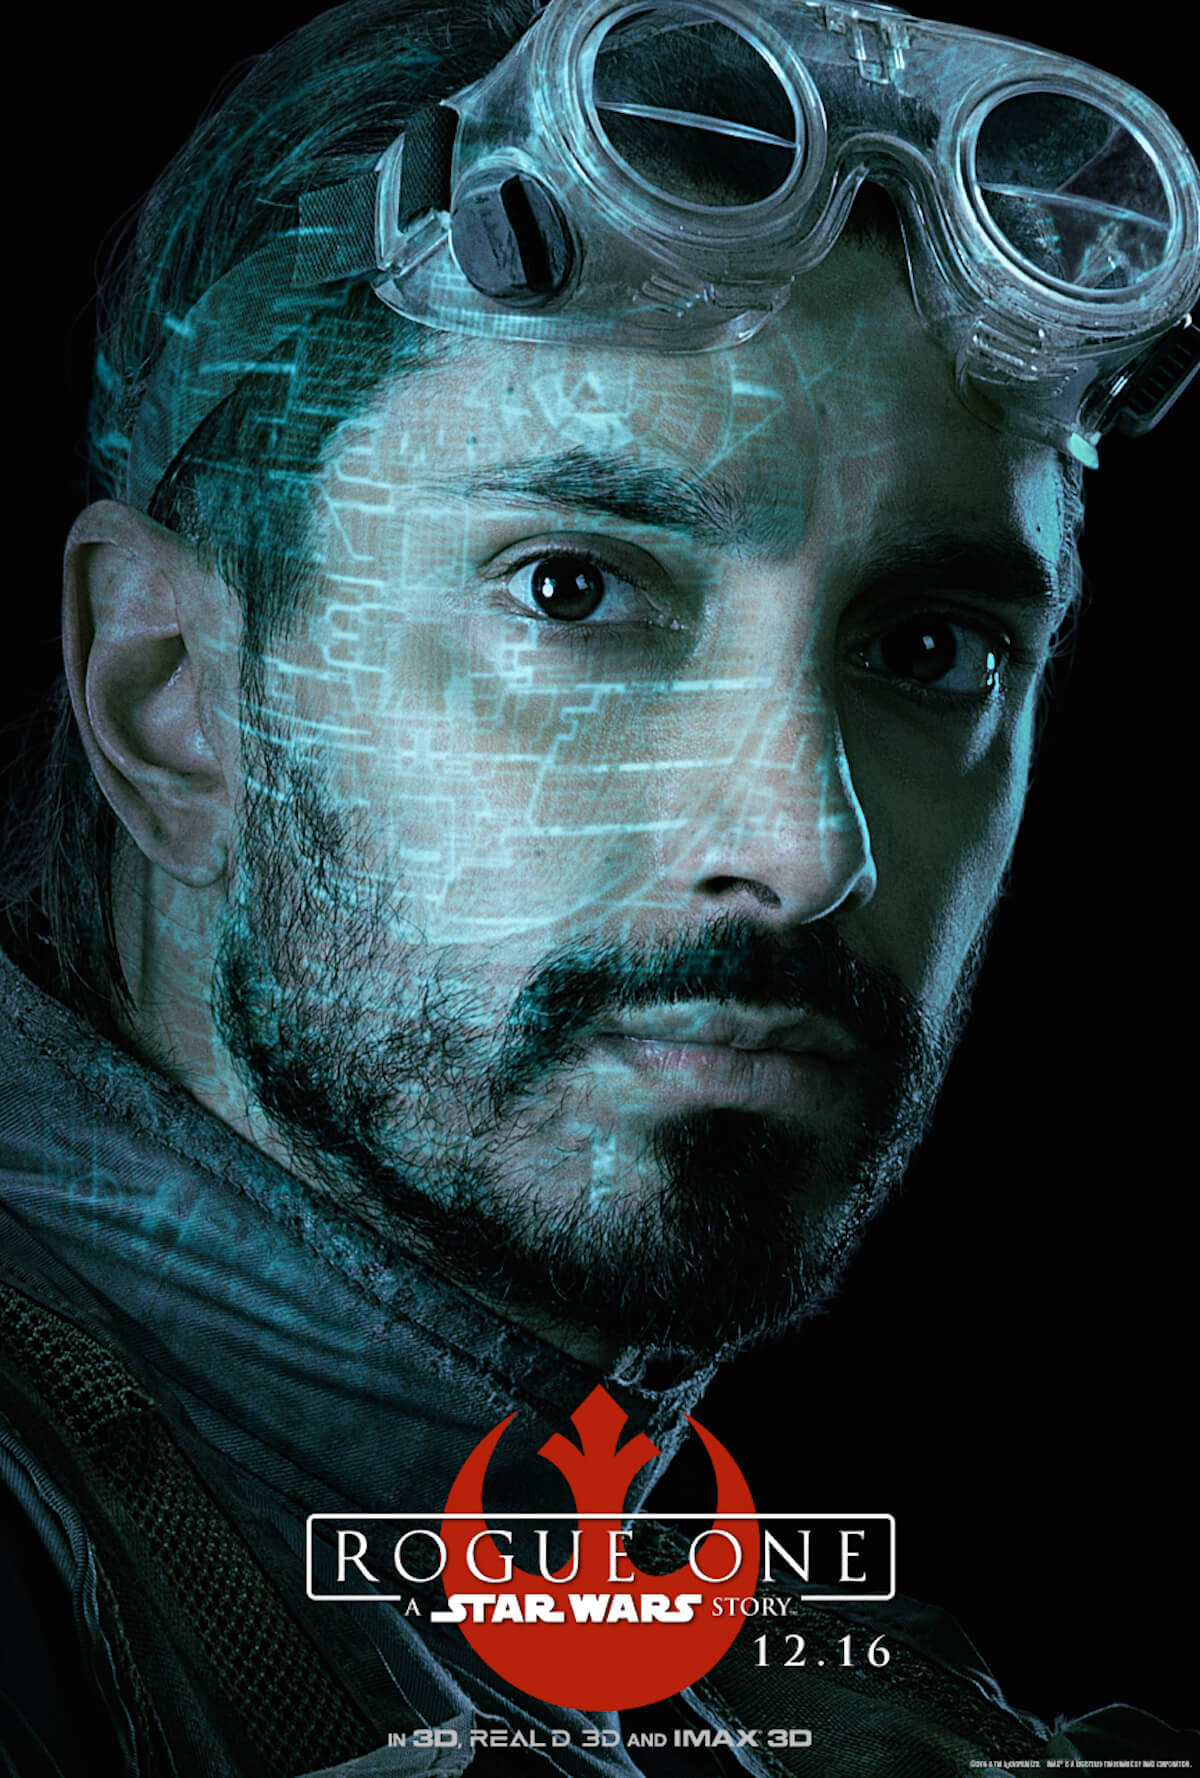 Rogue one poster riz ahmed